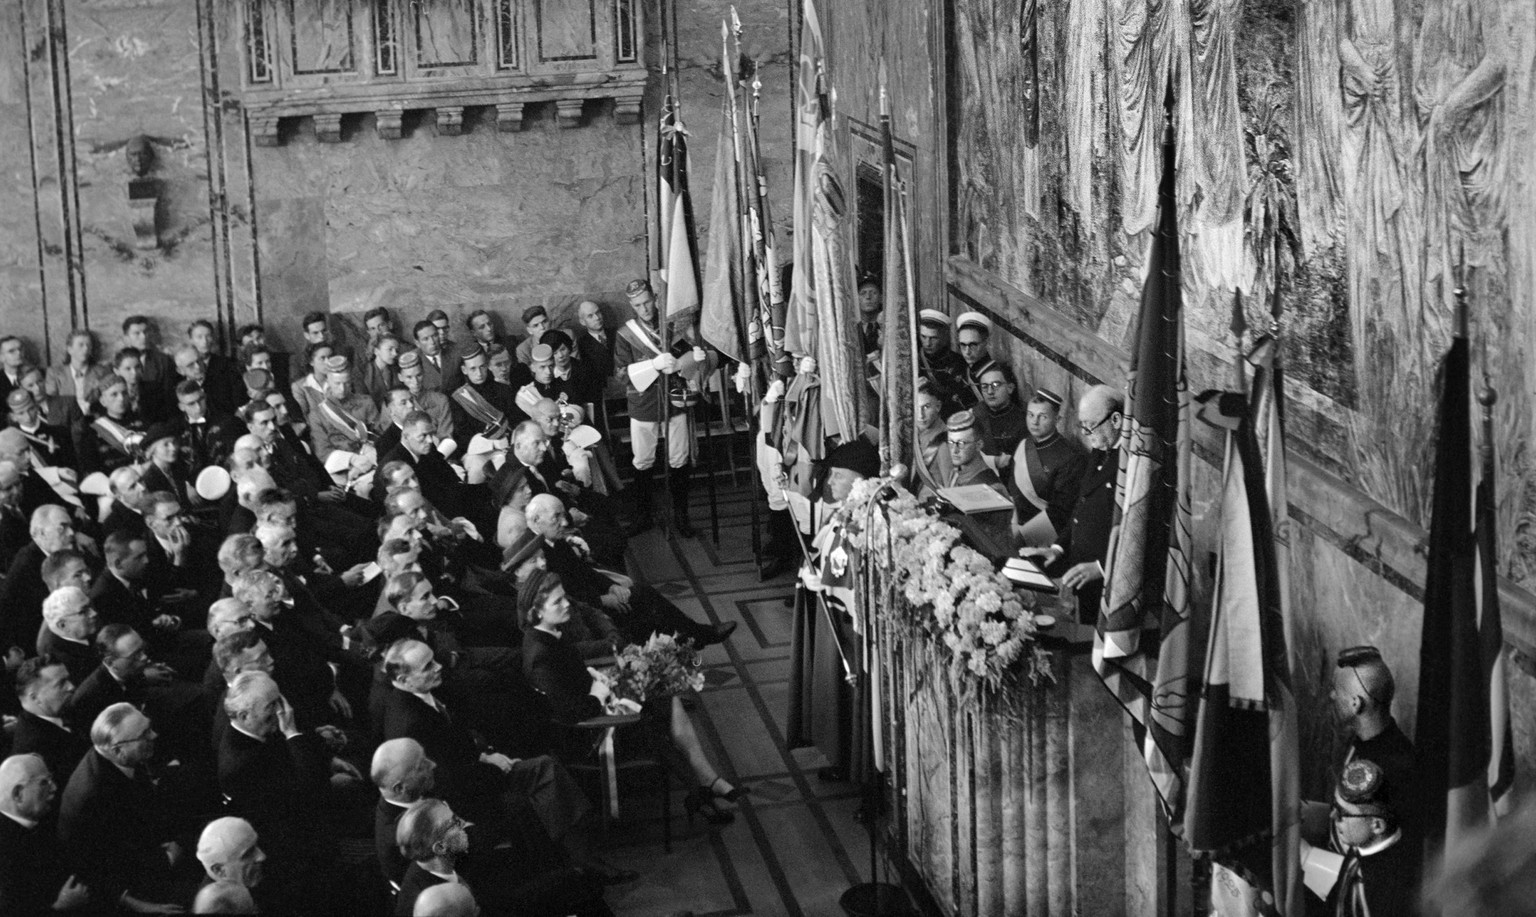 ARCHIVE --- WINSTON CHURCHILL WIRD VOR 70 JAHREN, AM 19. SEPTEMBER 1946, IN ZUERICH VON DER BEVOELKERUNG BEGEISTERT EMPFANGEN. IN DER AULA DER UNIVERSITAET HAELT ER EINE REDE, IN DER ER ZUR EINIGUNG EUROPAS AUFRUFT --- In the auditorium of the university of Zurich, the former Prime Minister of Greatbritain, Winston Churchill, holds a speech on September 19, 1946 in which he calls upon Europe to unite: